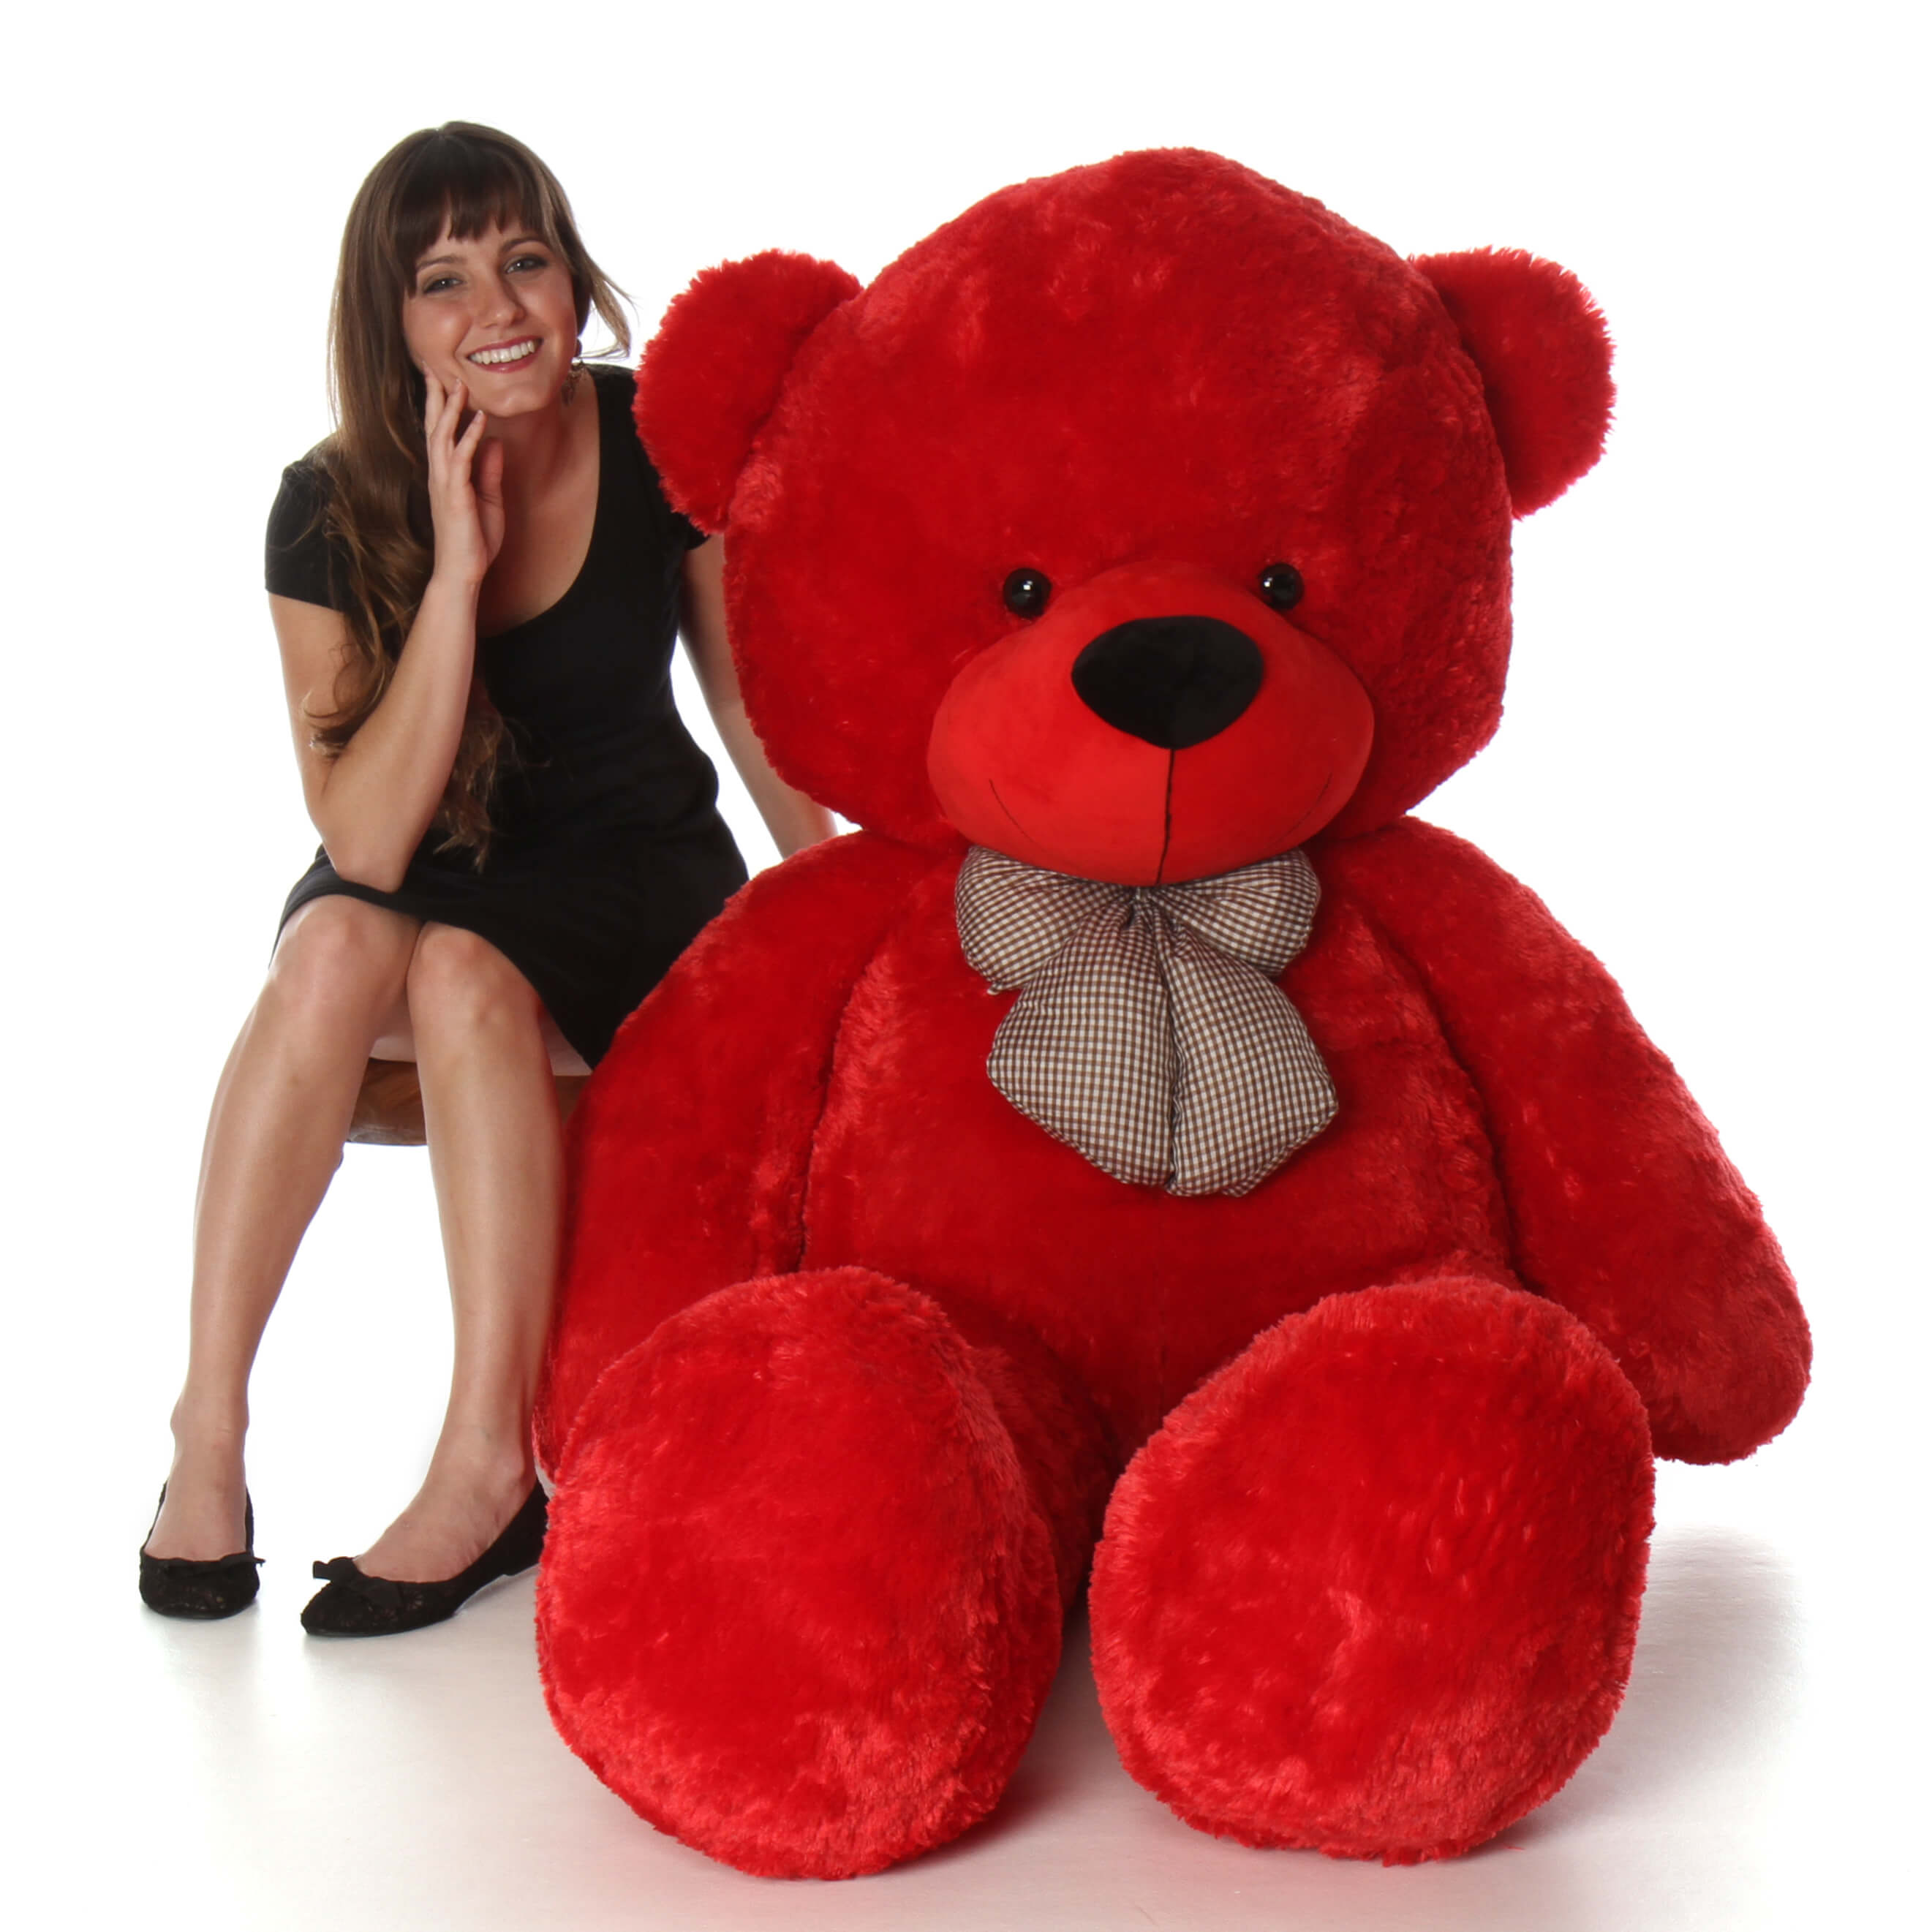 life-size-red-teddy-bear-bitsy-cuddles-72in-1.jpg